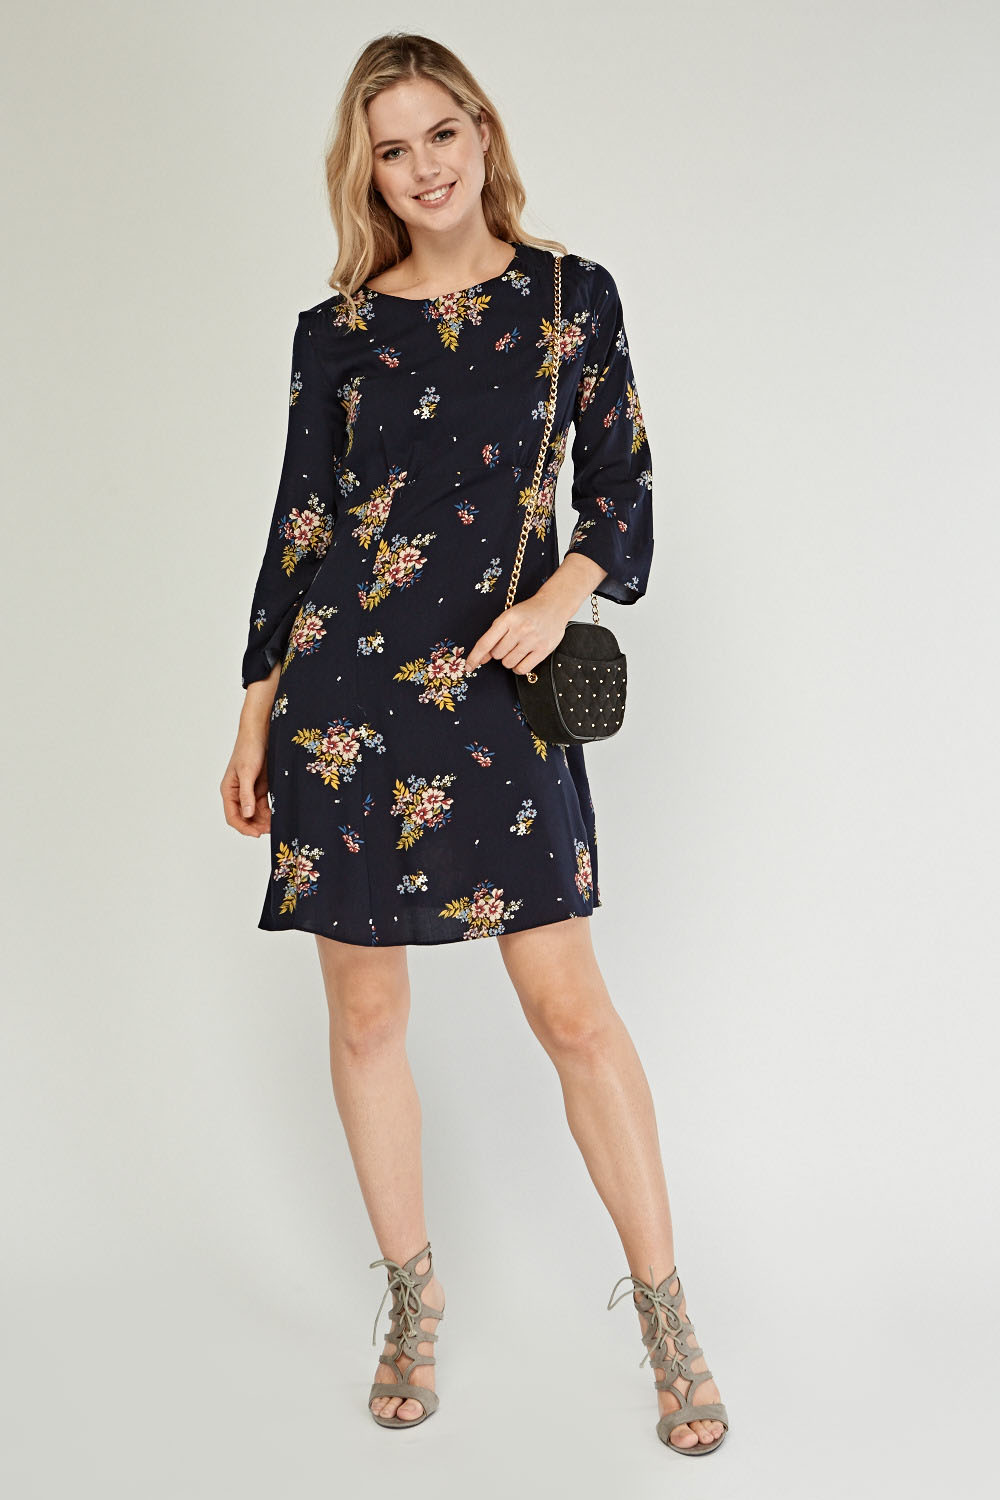 Floral Tunic Dress - Navy Multi - Just £5 698264974